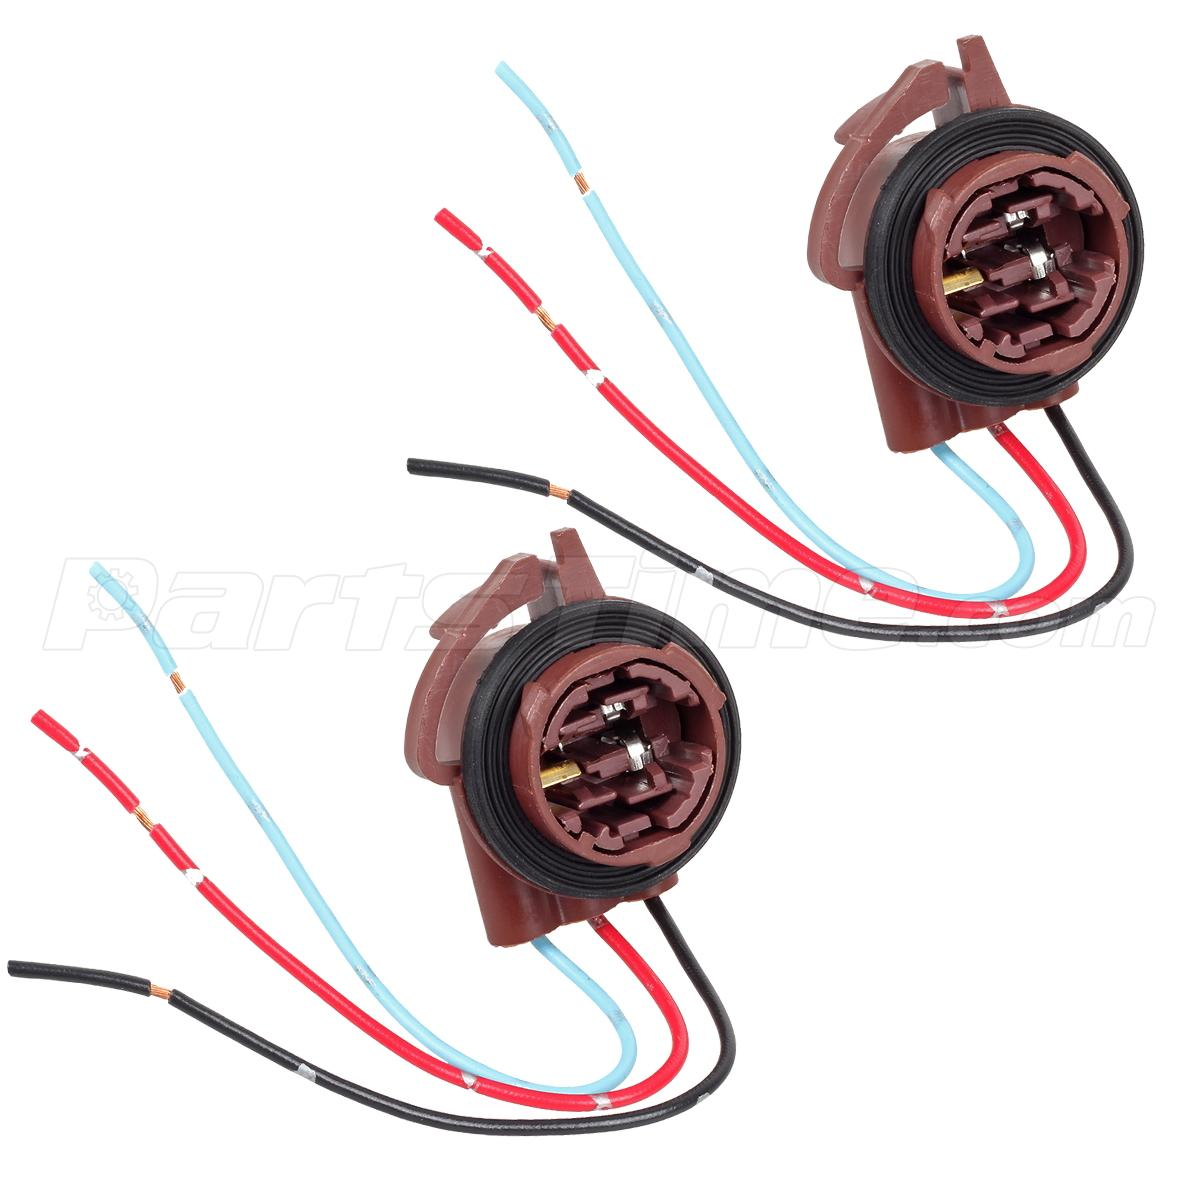 2pc 3157 3057 female socket brake turn light wire harness 2pcs 3157 4157 3057 female socket brake turn signal light wire harness connector